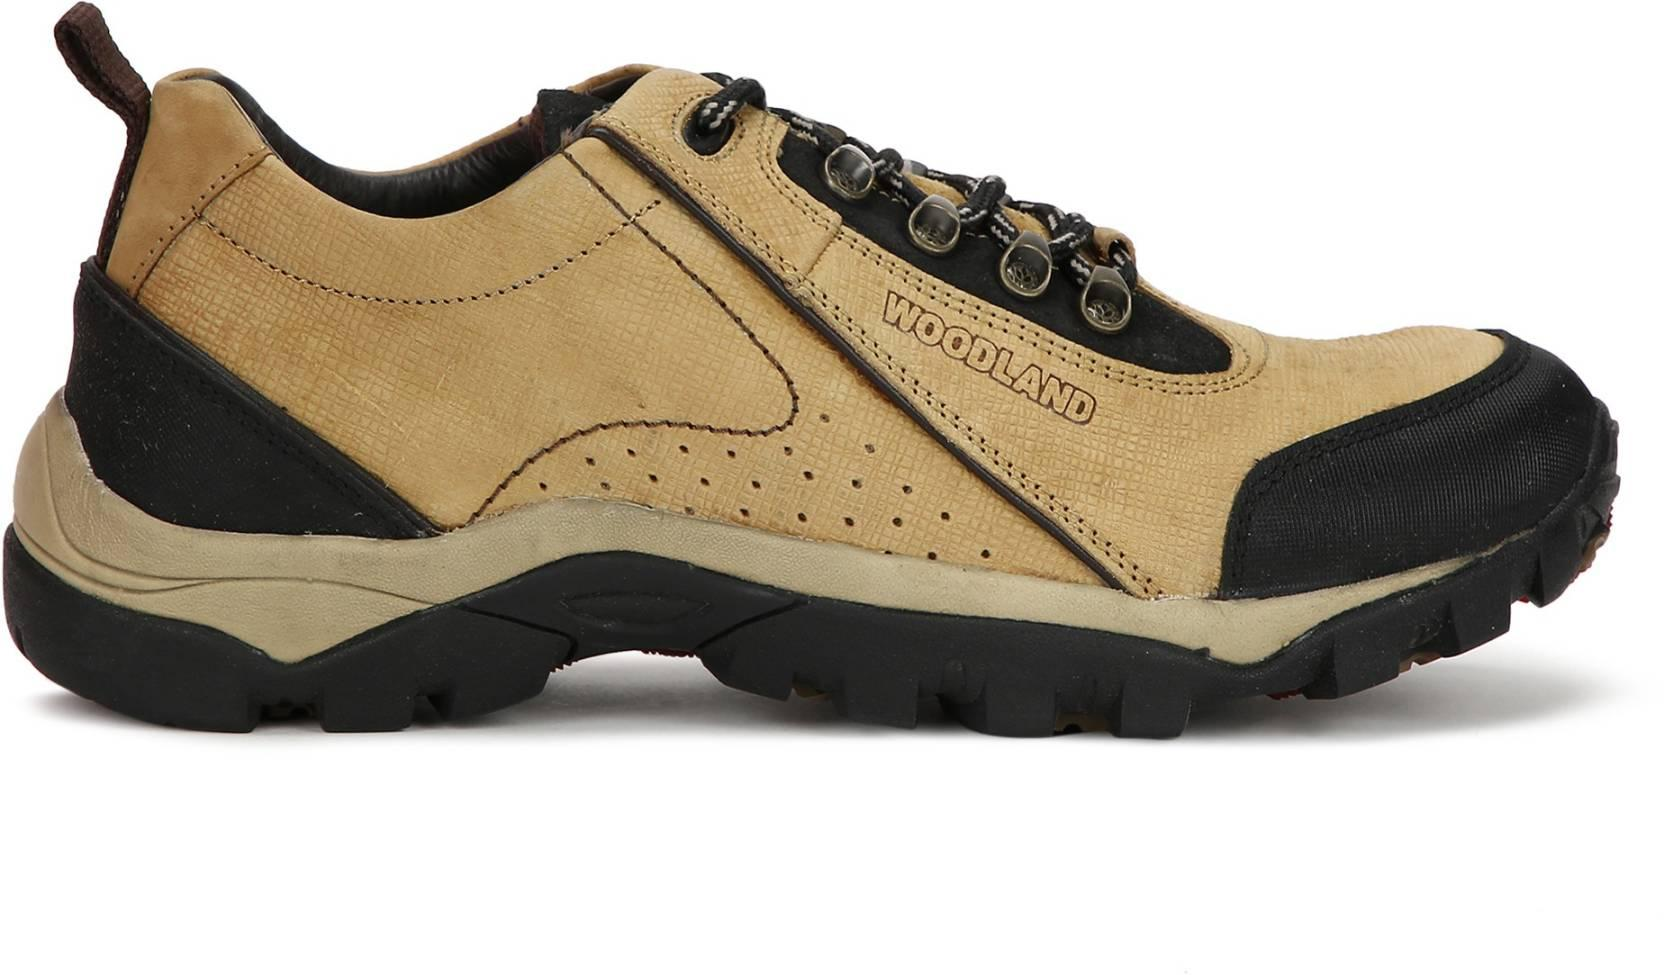 Outdoors For Men(Brown)